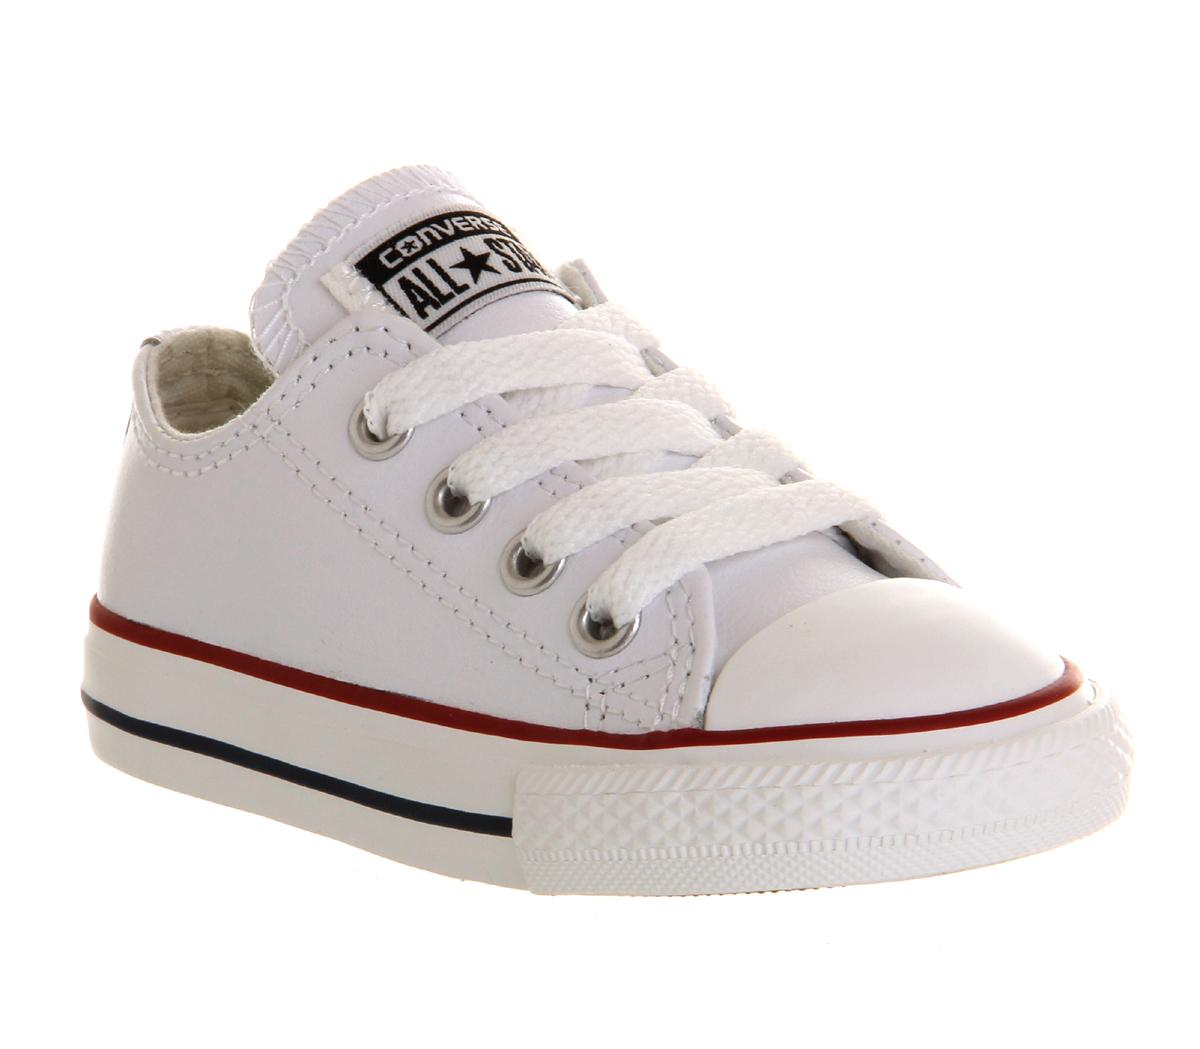 Baby White Converse Pram Shoes All Star Low Infant Shoes